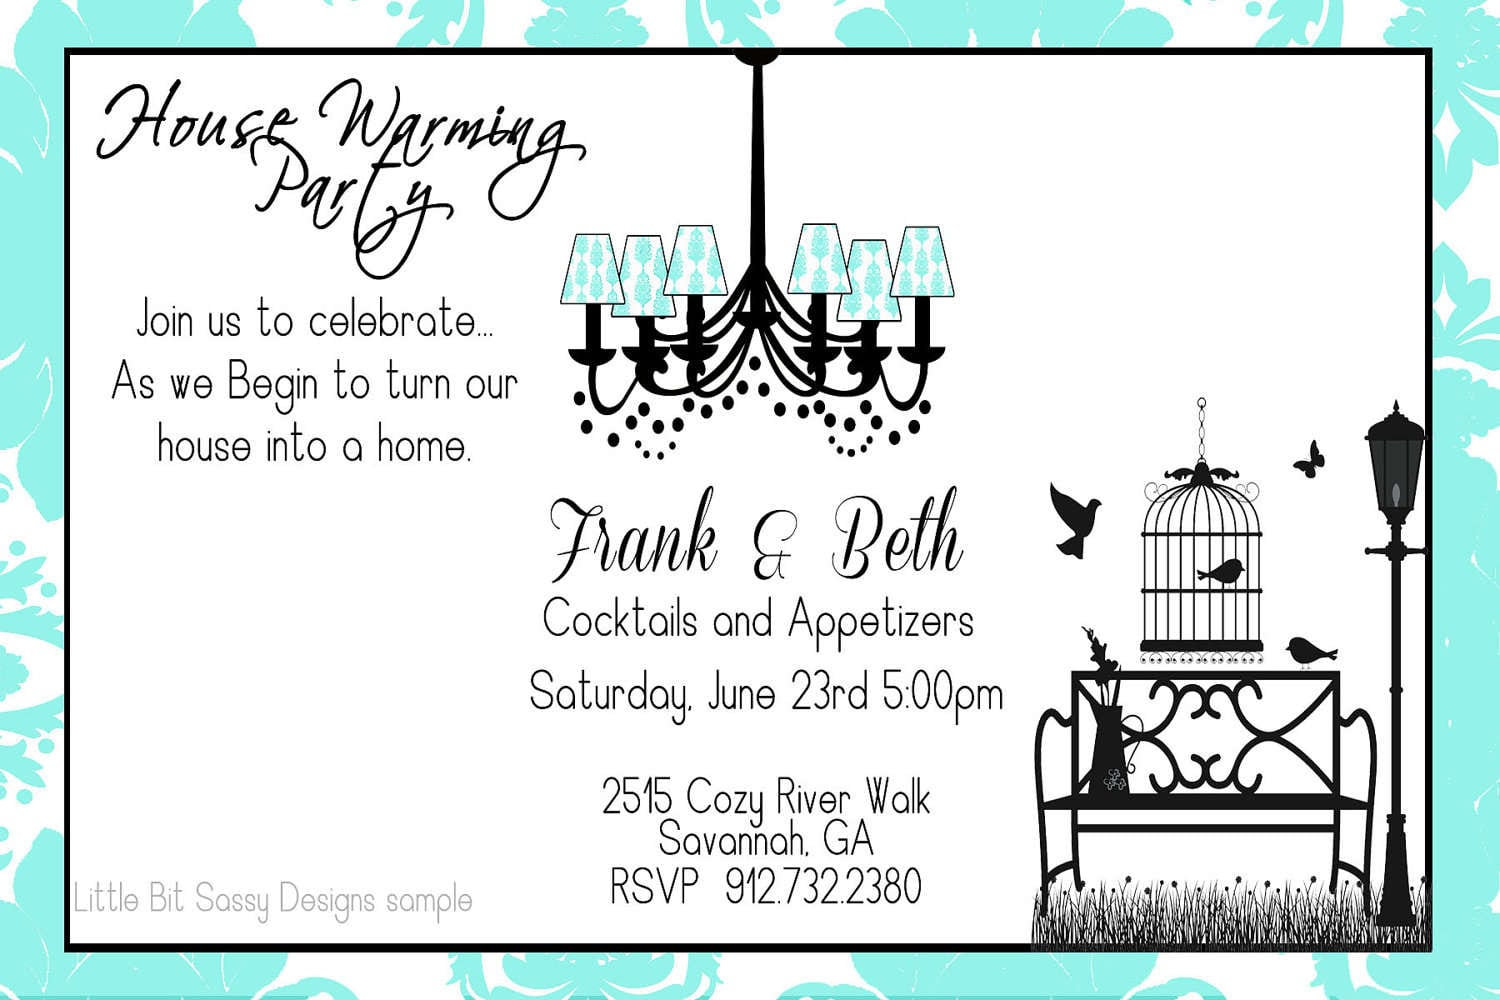 How To Create Housewarming Party Invitations Templates